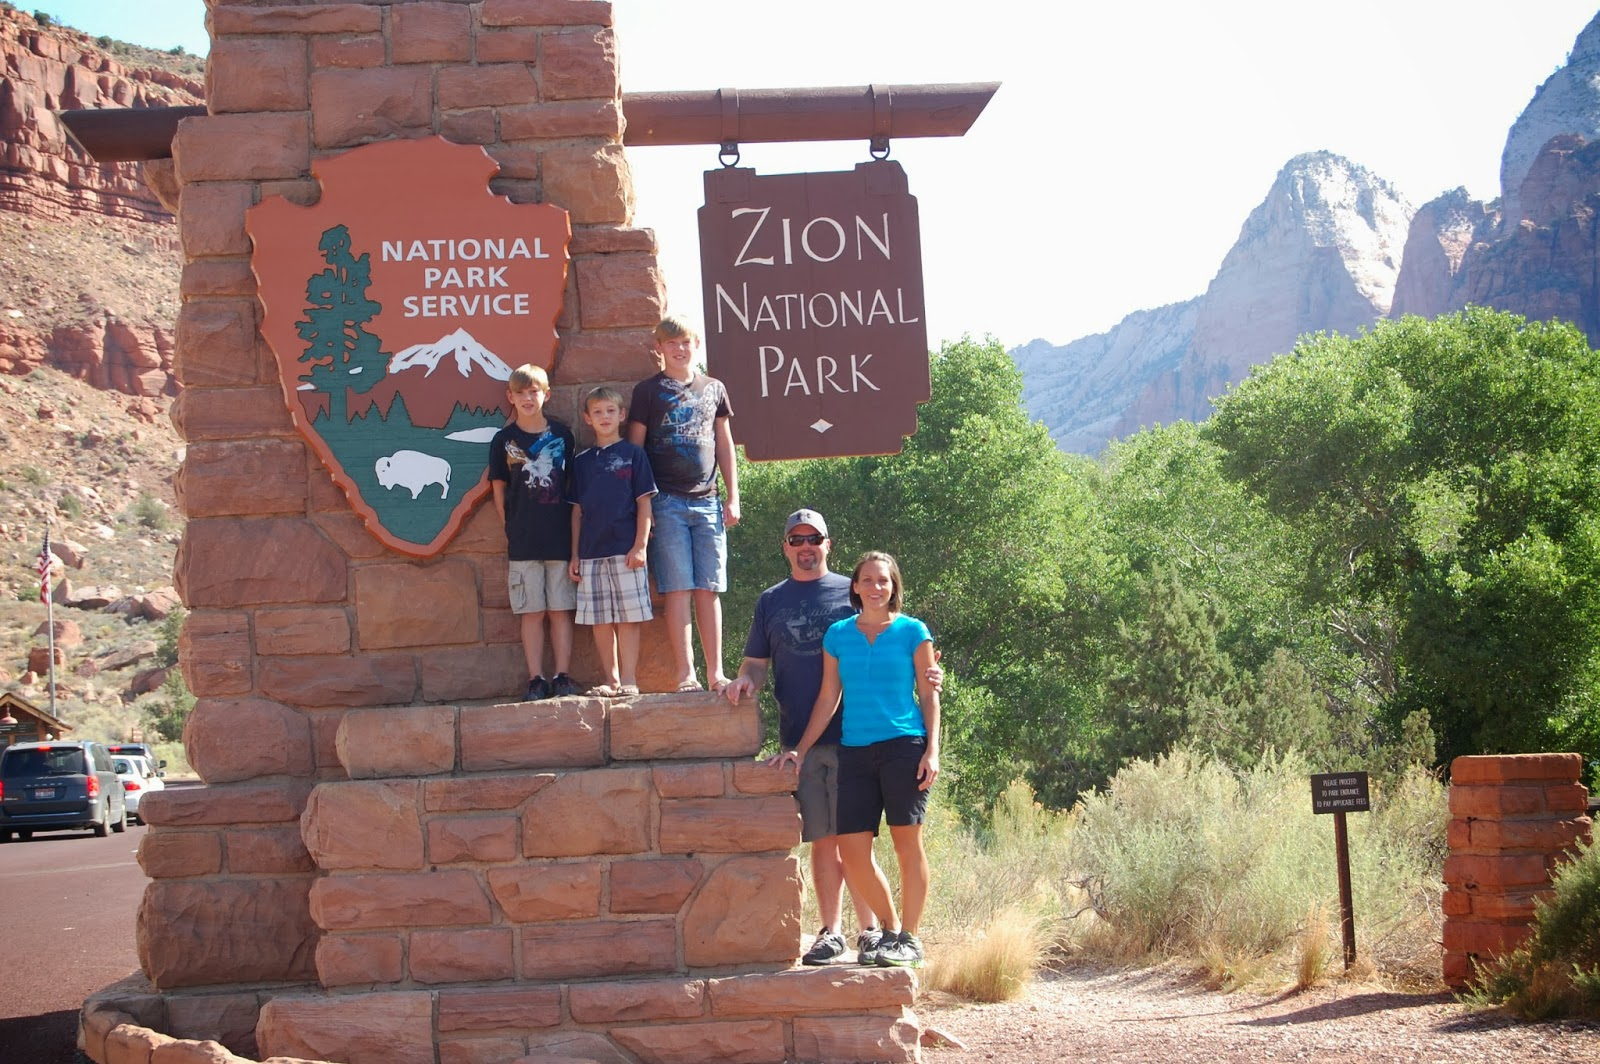 zion park hiking